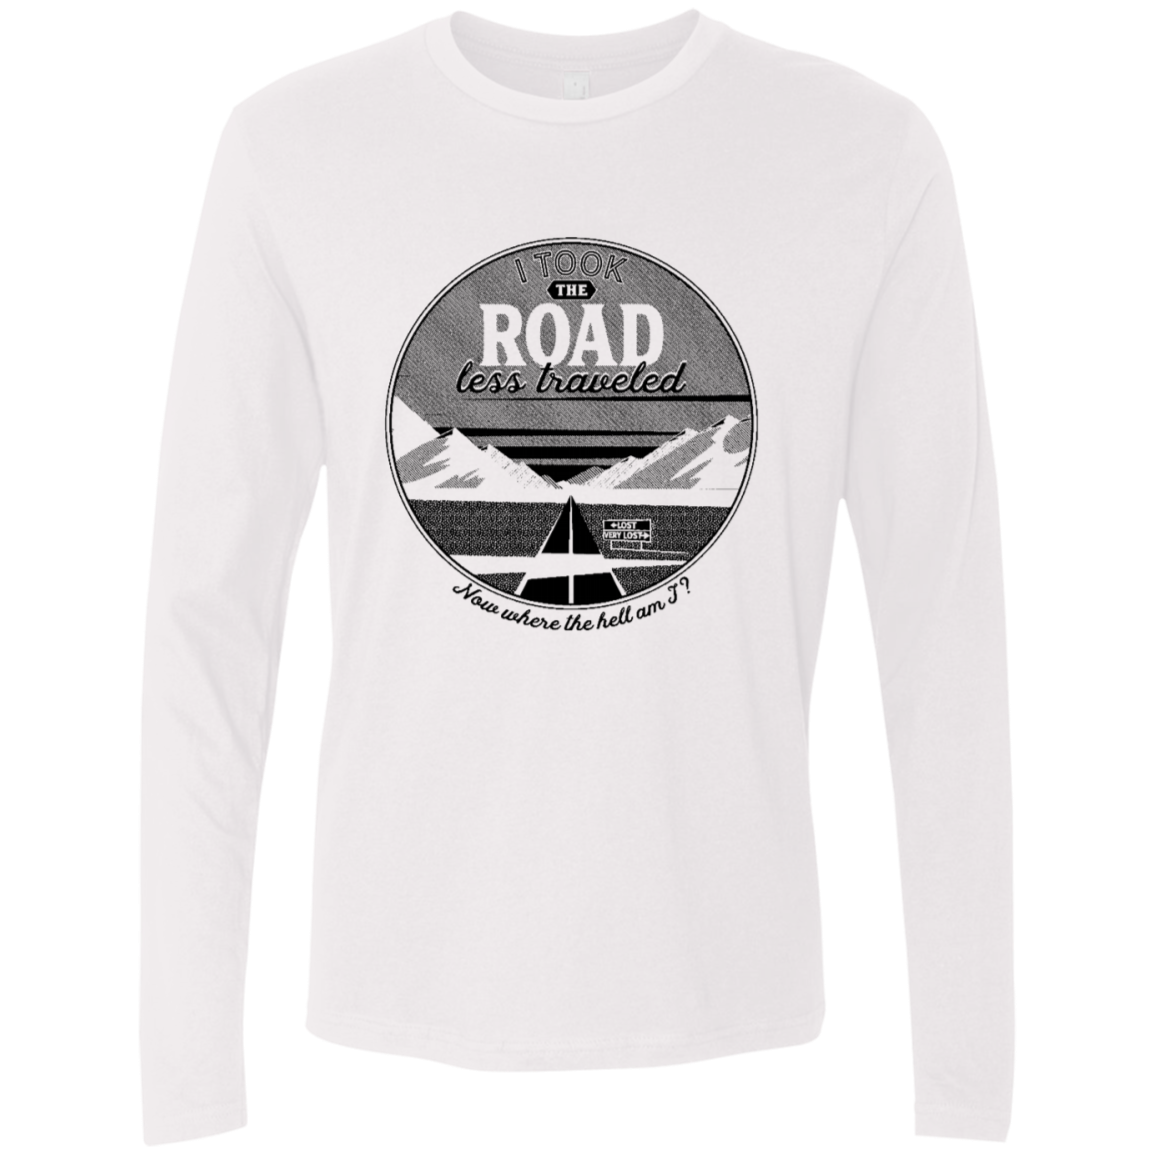 I Took The Road Less Traveled Men's Long Sleeve Tee